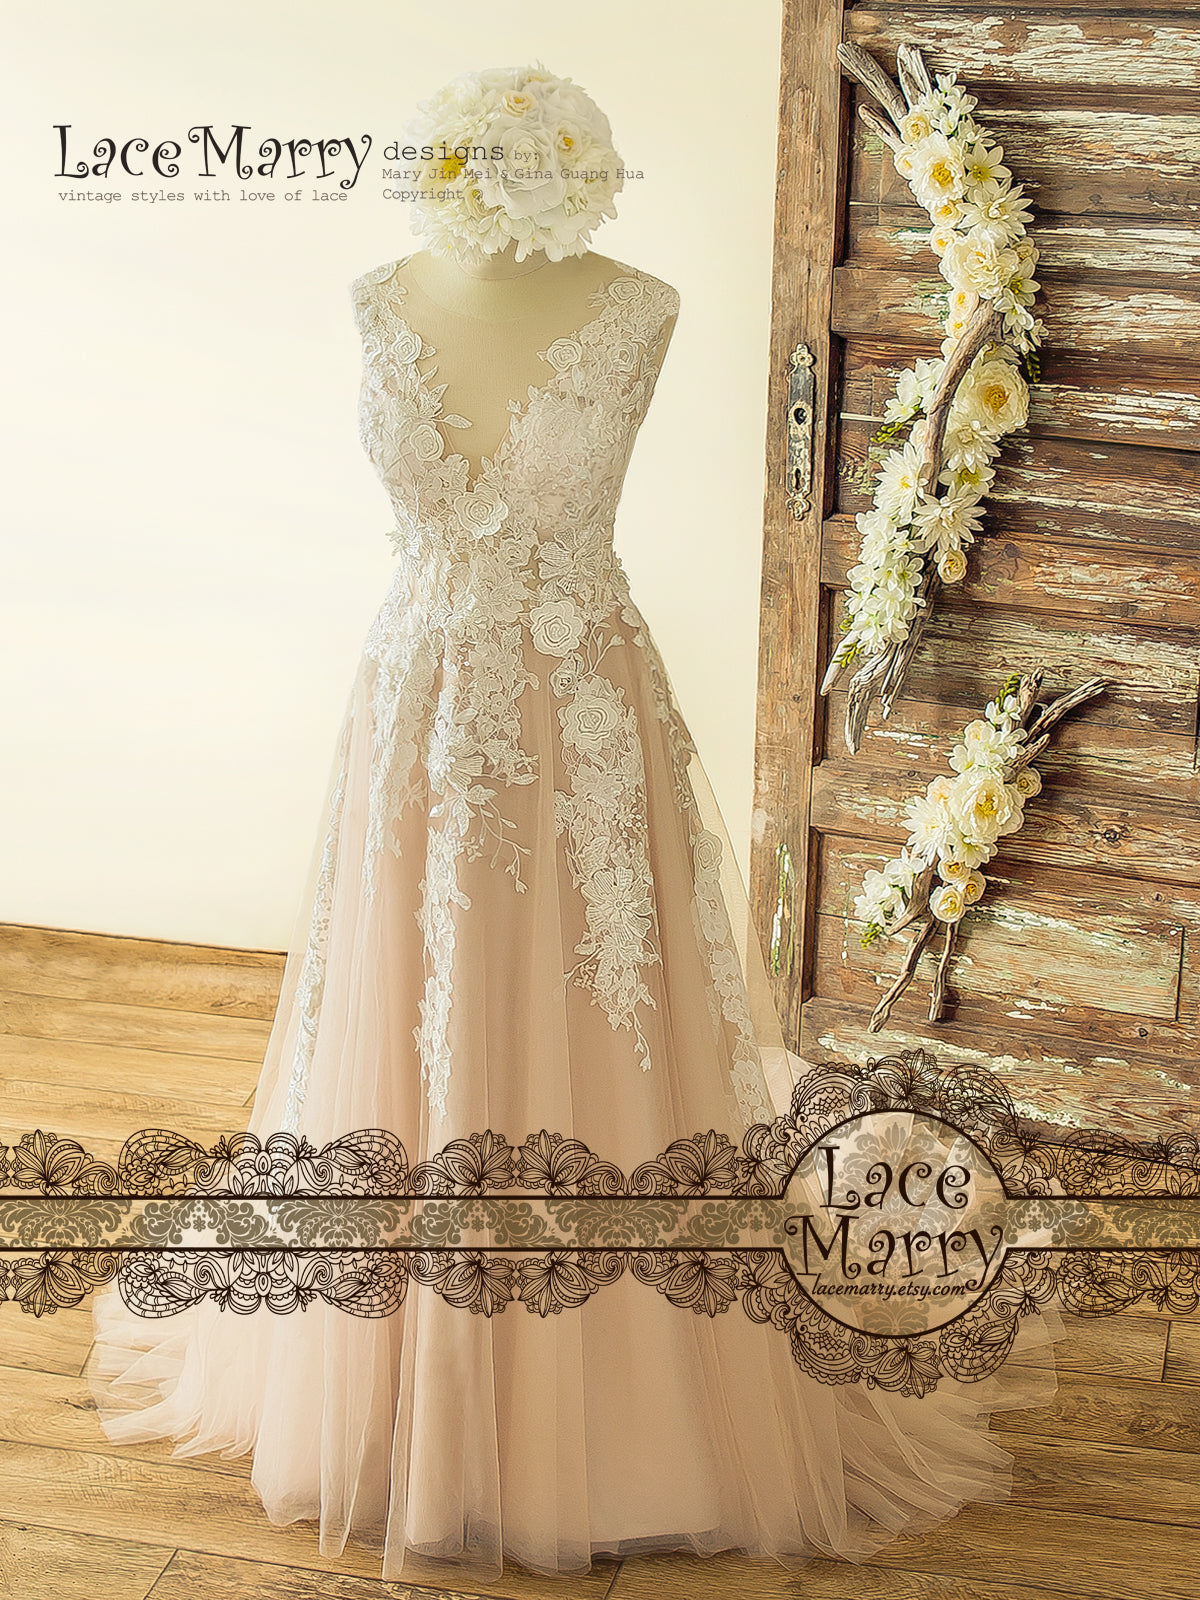 8472f0cff5b73b Boho Blush Wedding Dress with Ivory Lace 3D Flower Appliques - LaceMarry